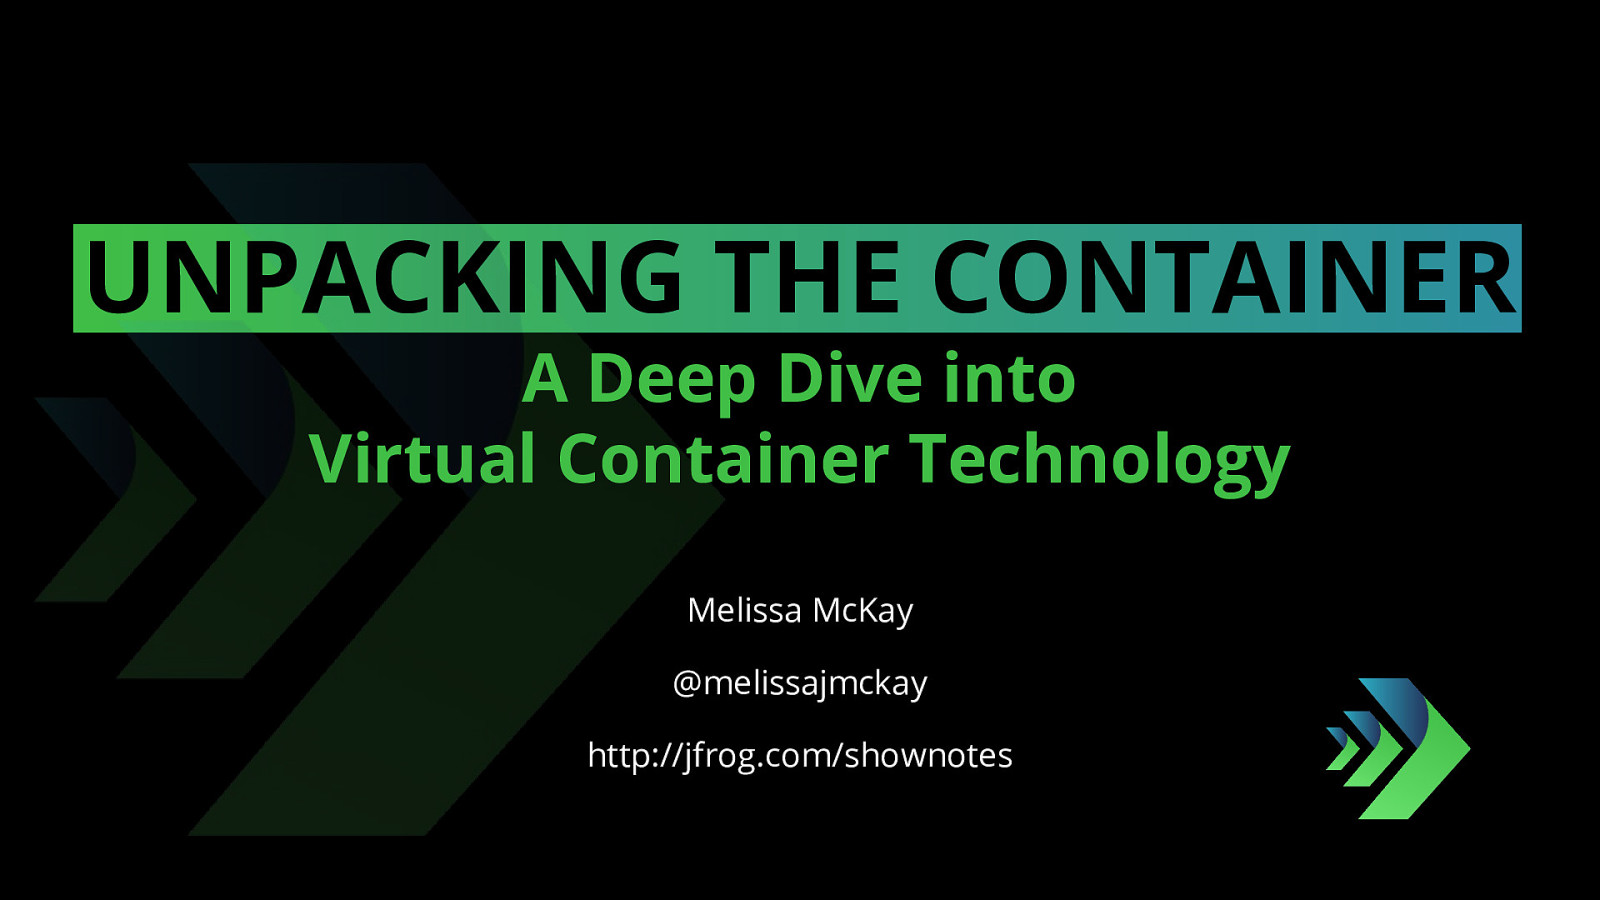 Unpacking the Container: A Deep Dive into Virtual Container Technology